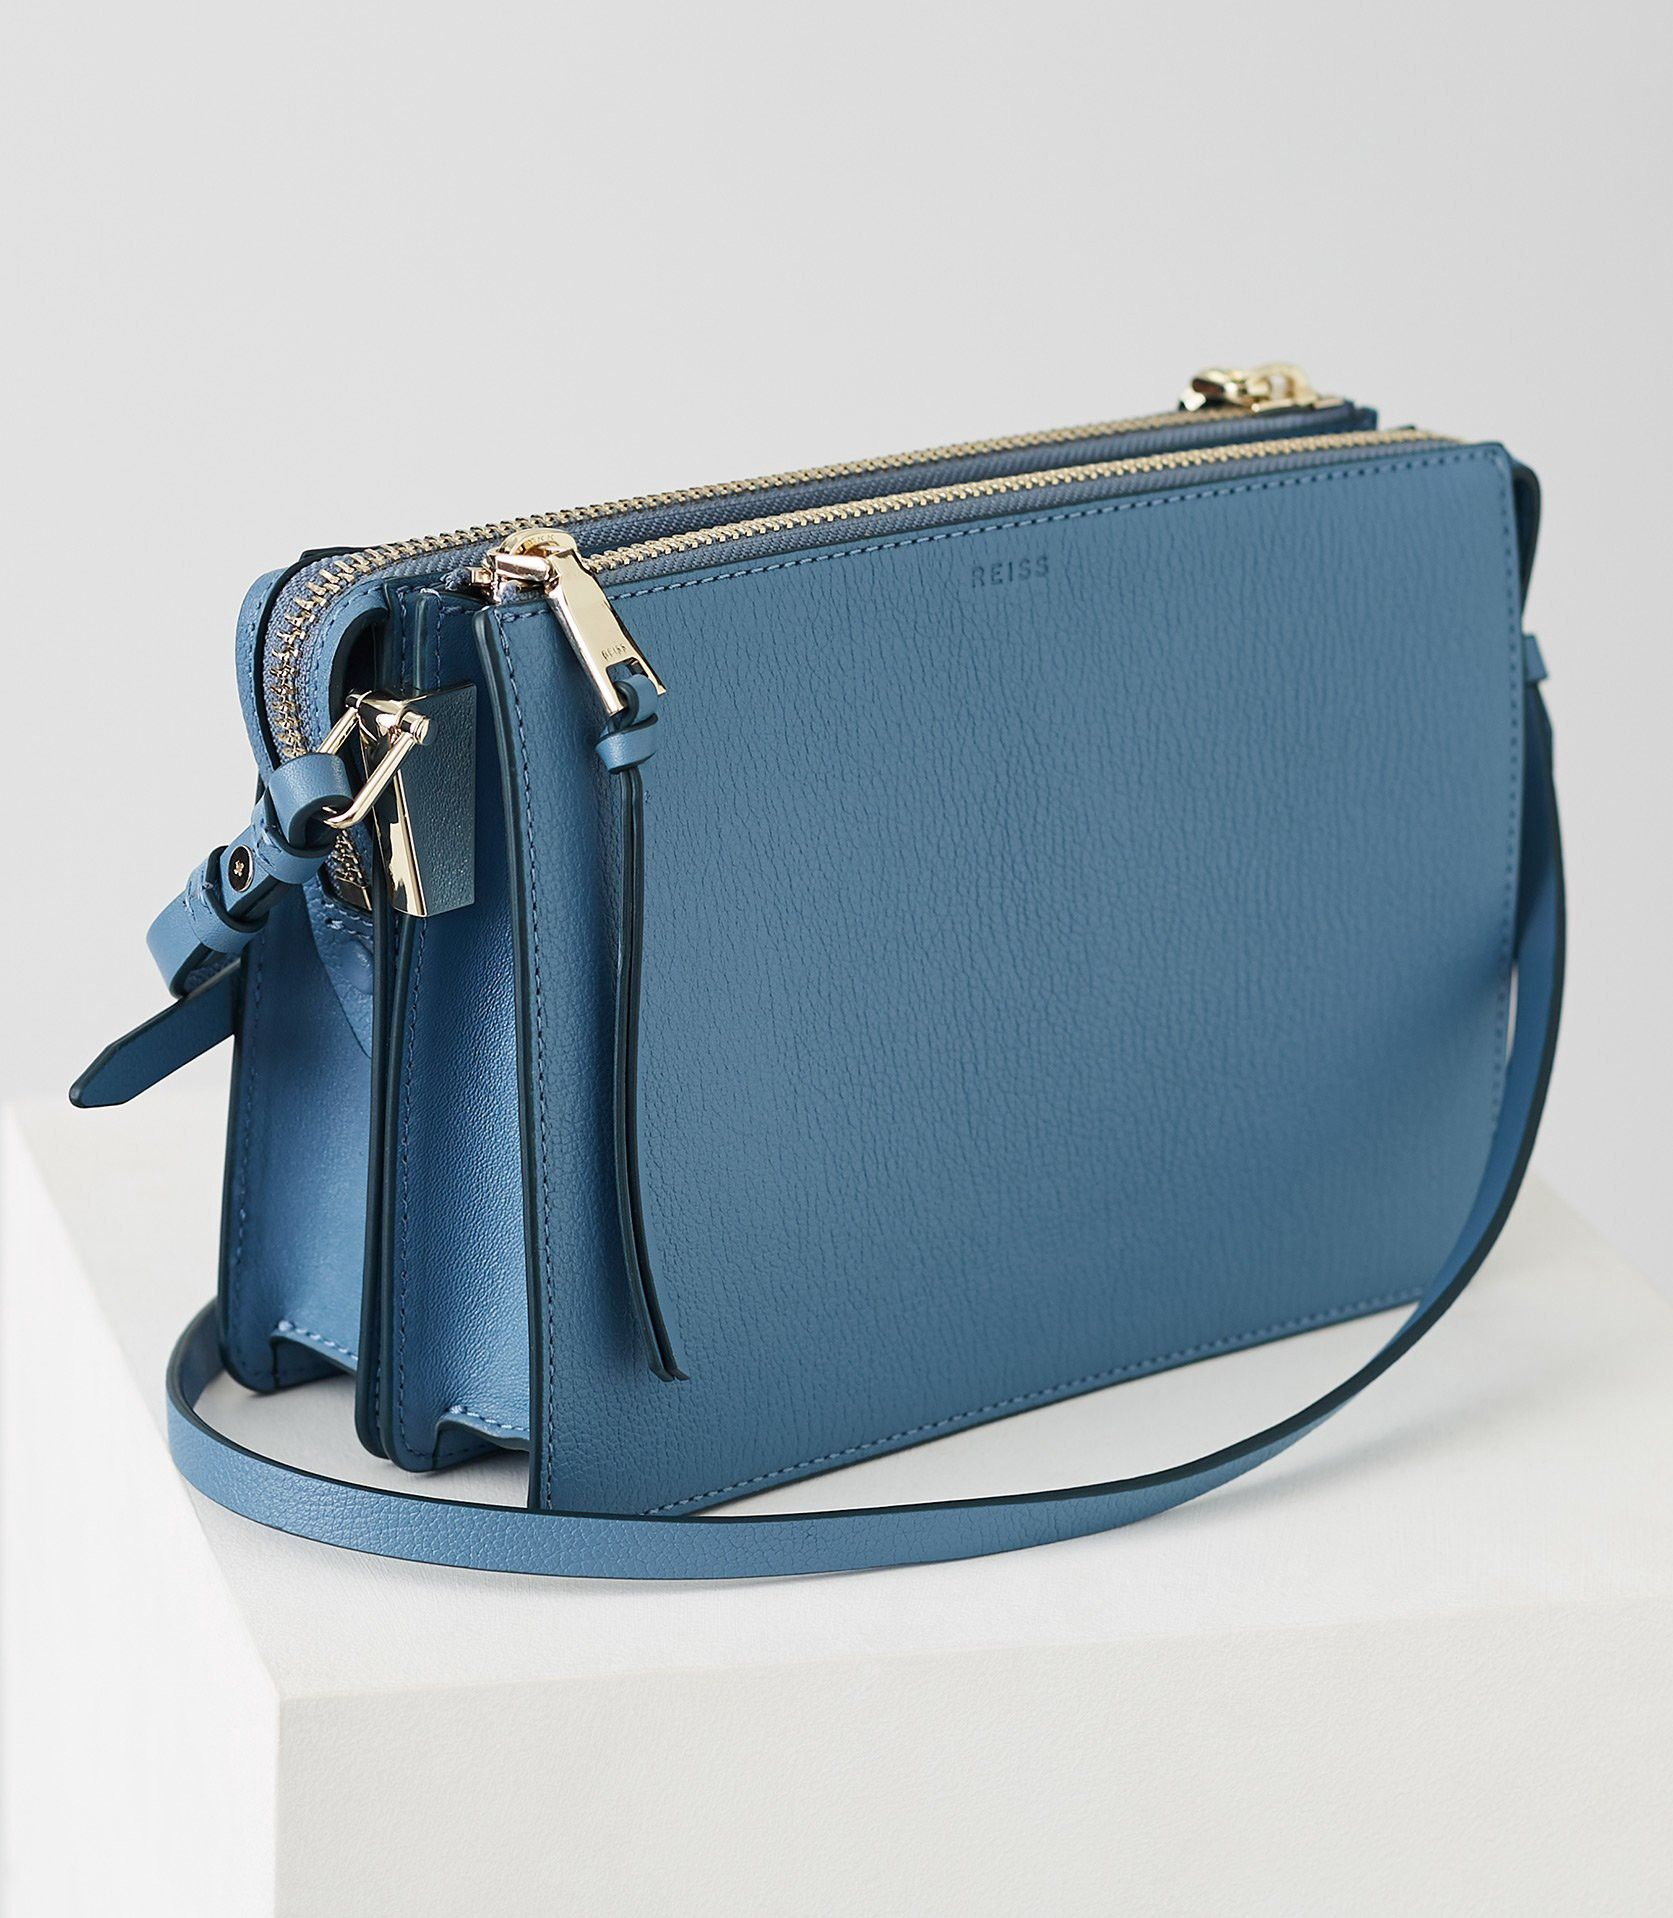 74949540ec9e Reiss Dalston Leather Cross-Body Bag Blue - One Size   Products by ...